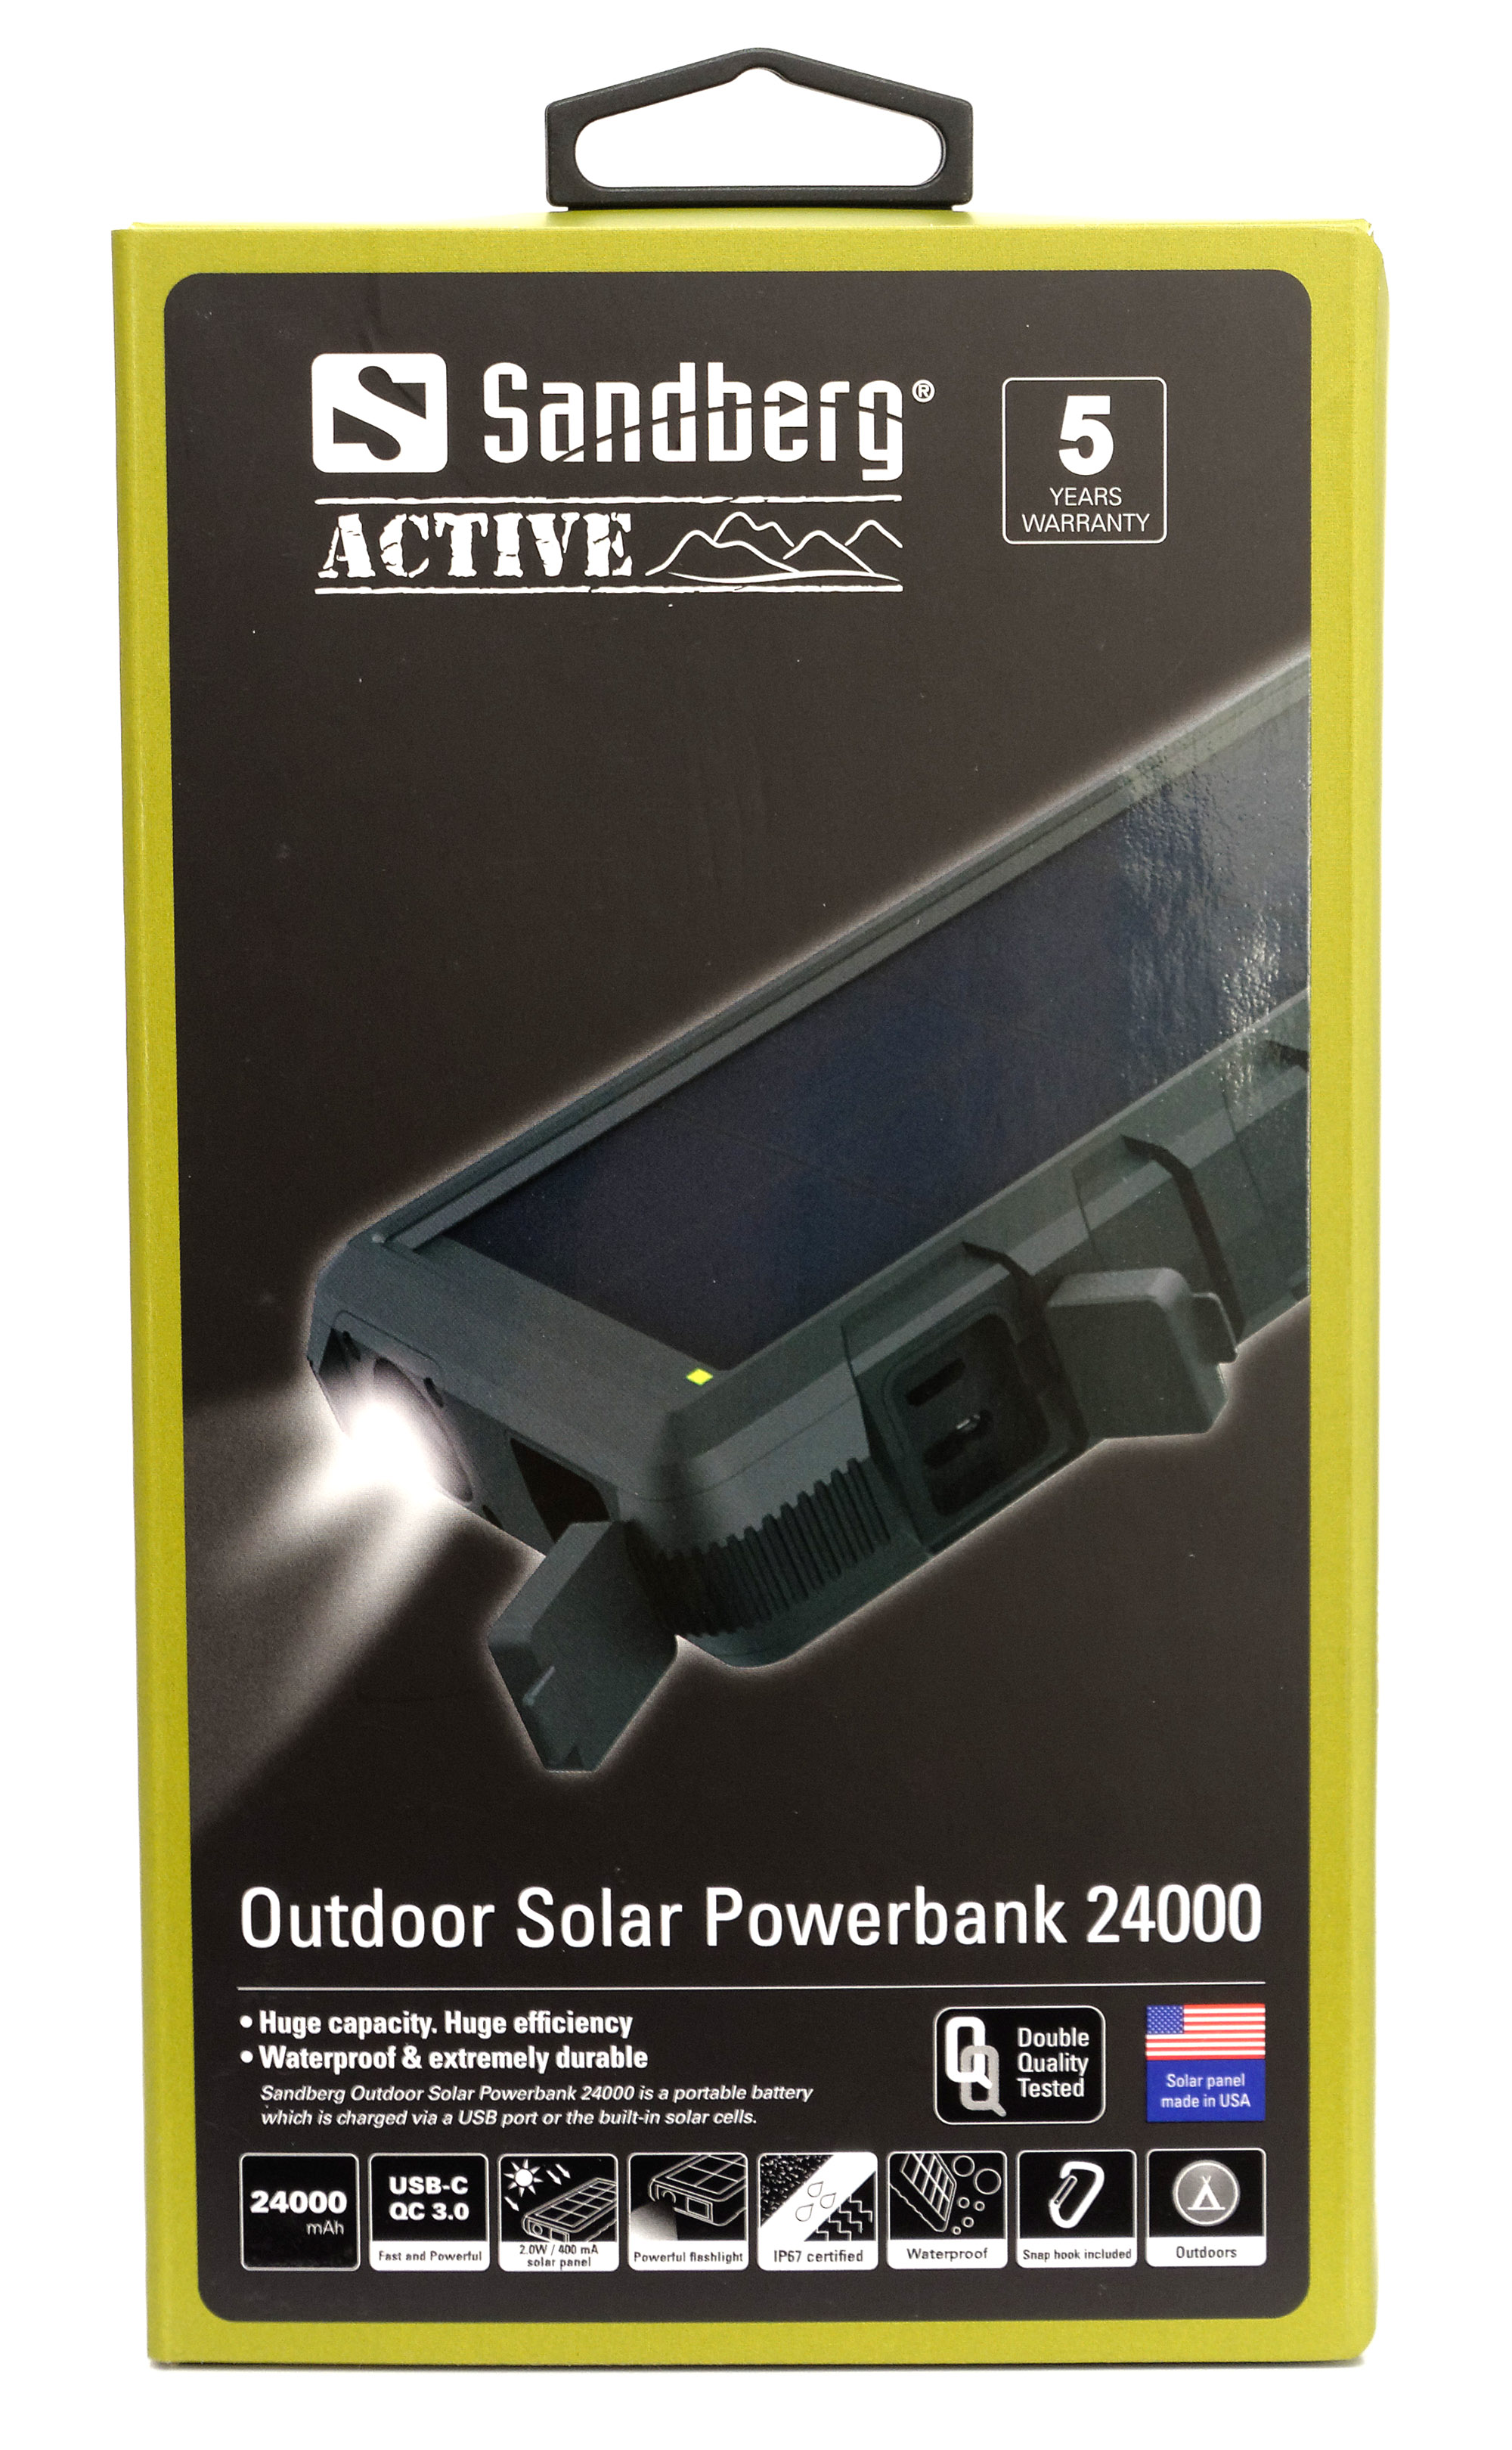 test sandberg outdoor solar powerbank 24000. Black Bedroom Furniture Sets. Home Design Ideas